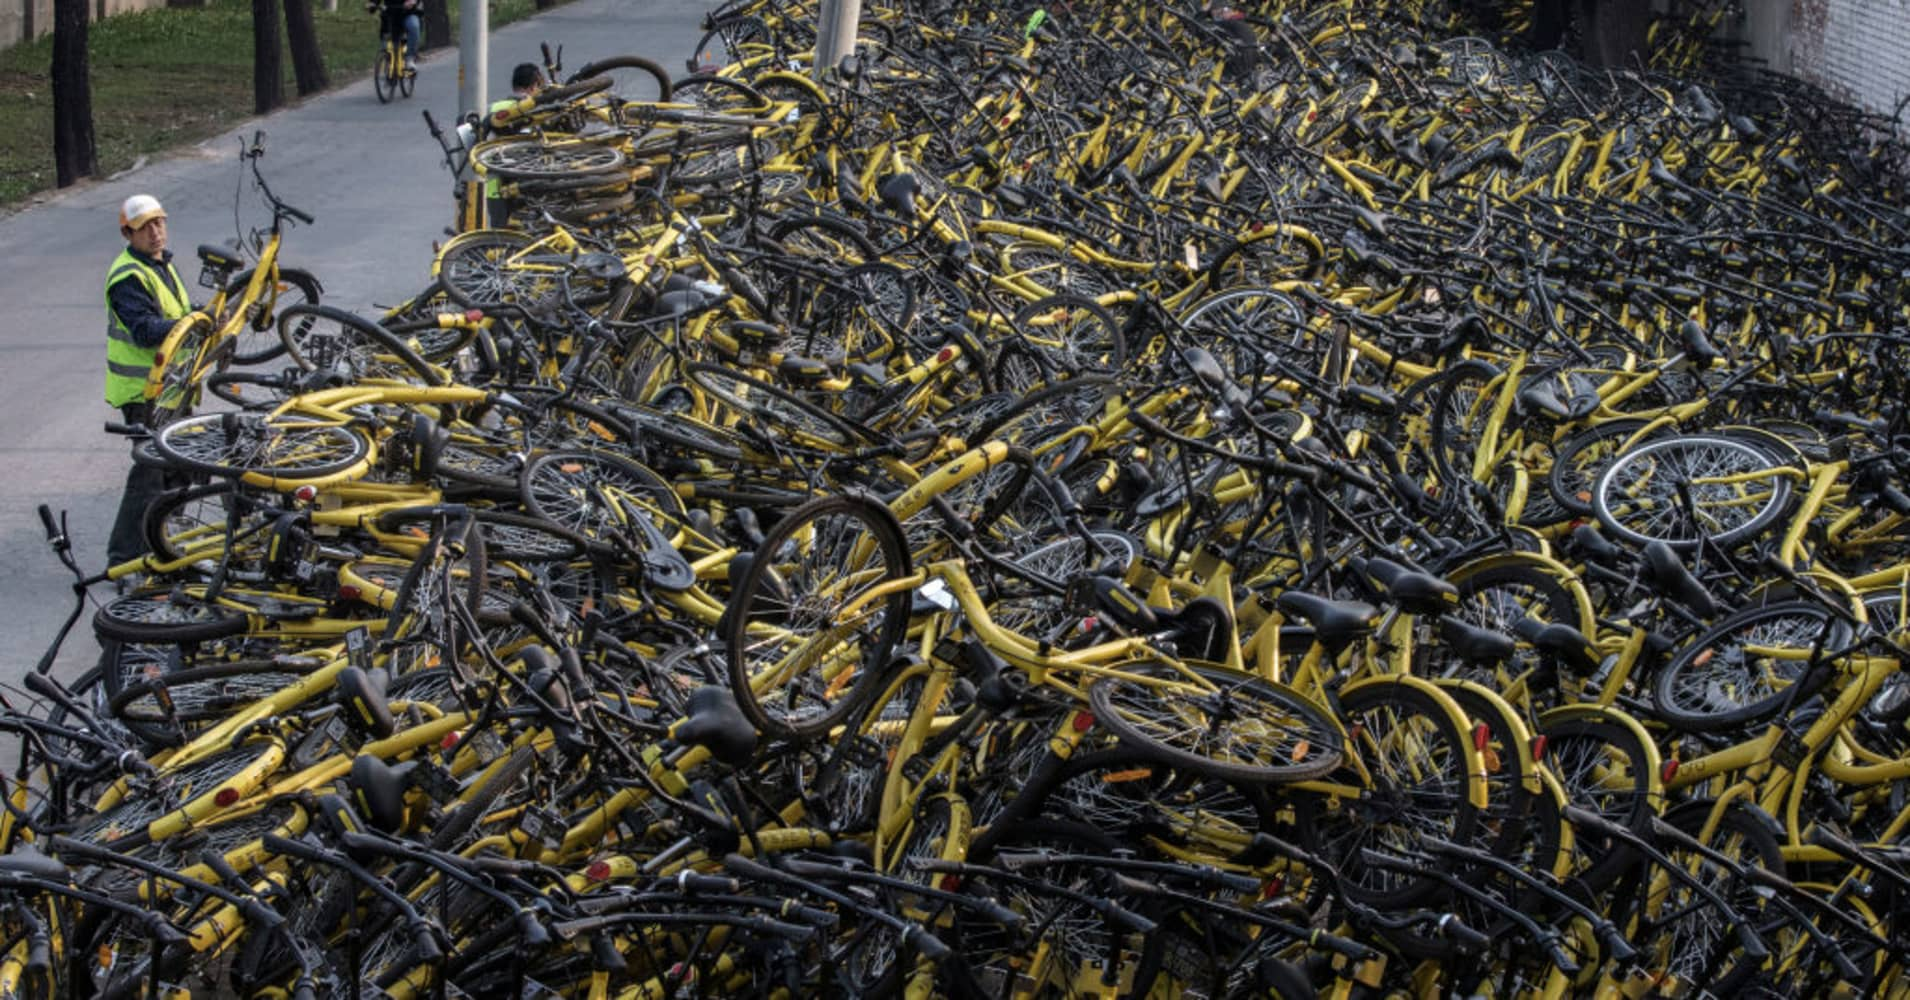 Ofo, Chinese bike-sharing start-up, says it's now worth more than $2 billion